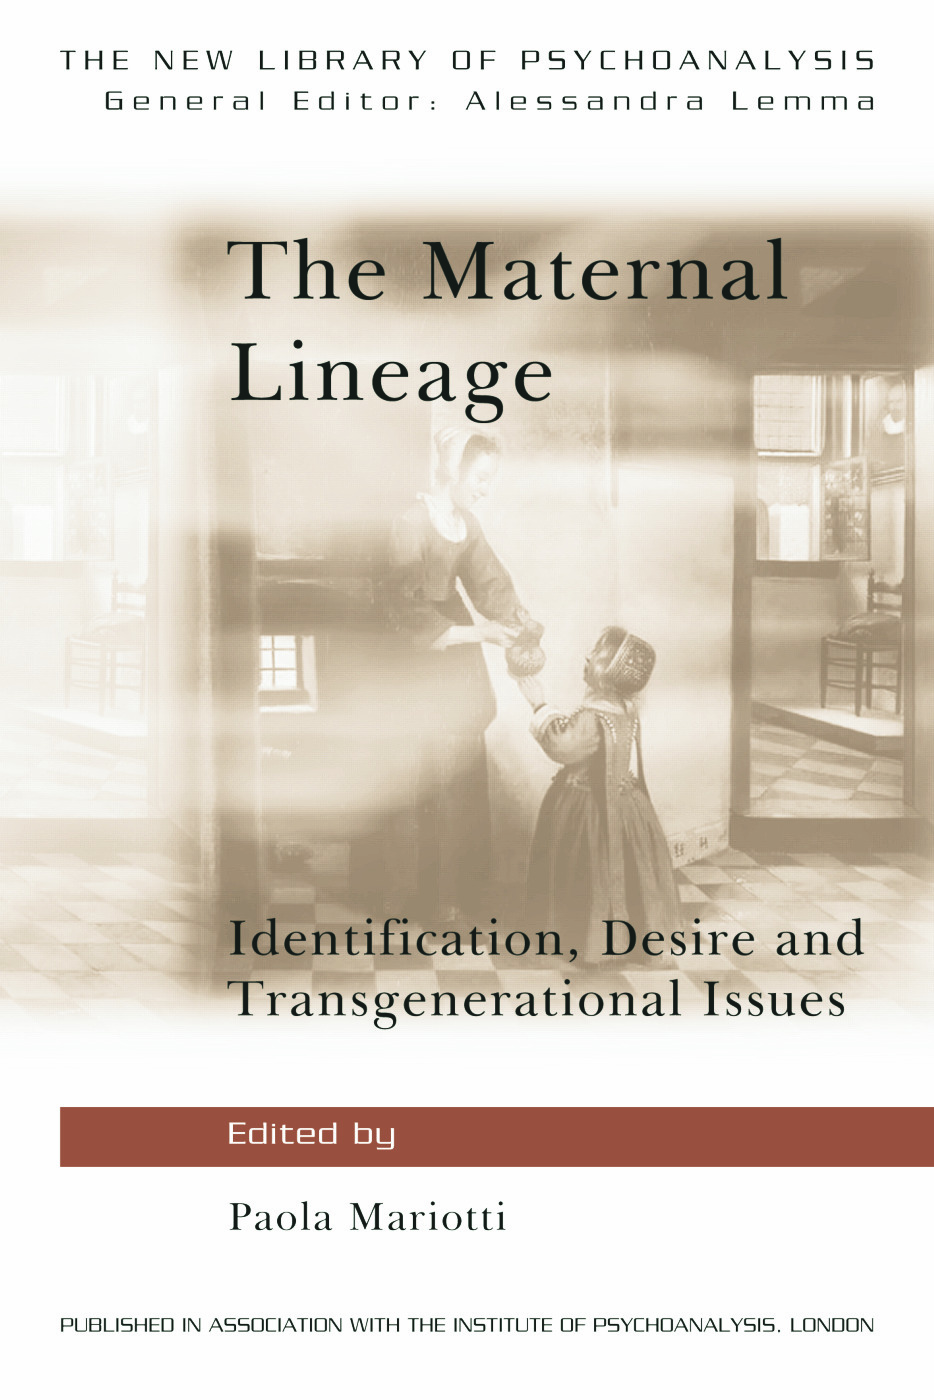 The Maternal Lineage: Identification, Desire and Transgenerational Issues book cover